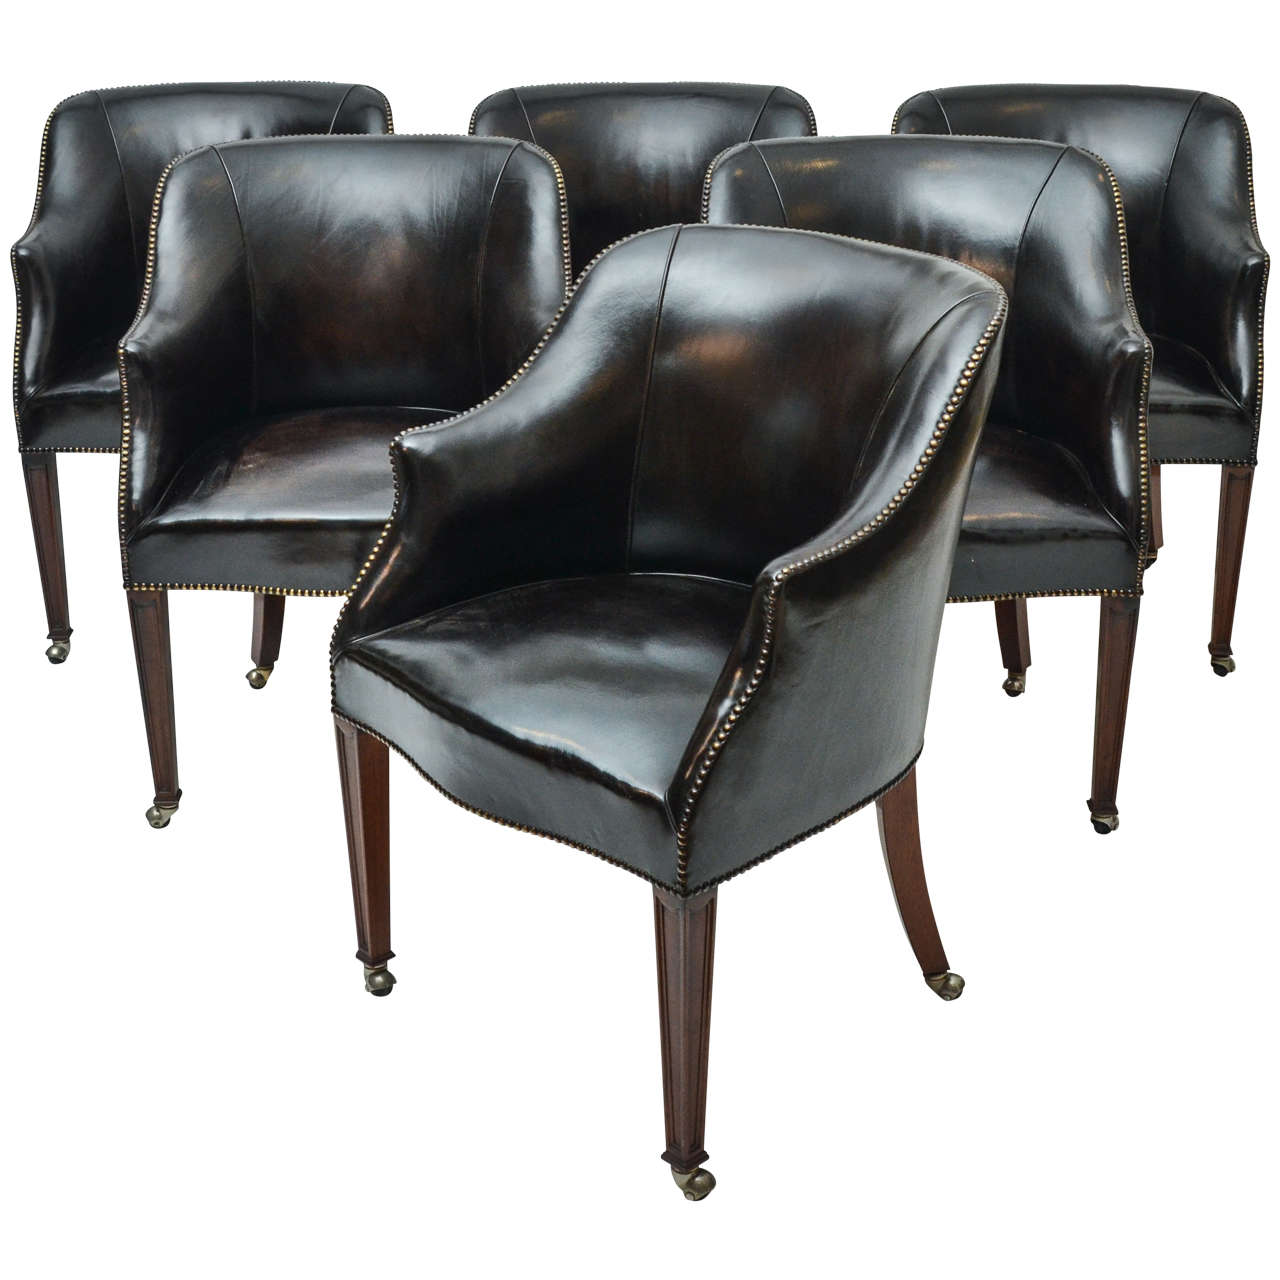 Set Of Six 1940s Leather Upholstered Dining Chairs From